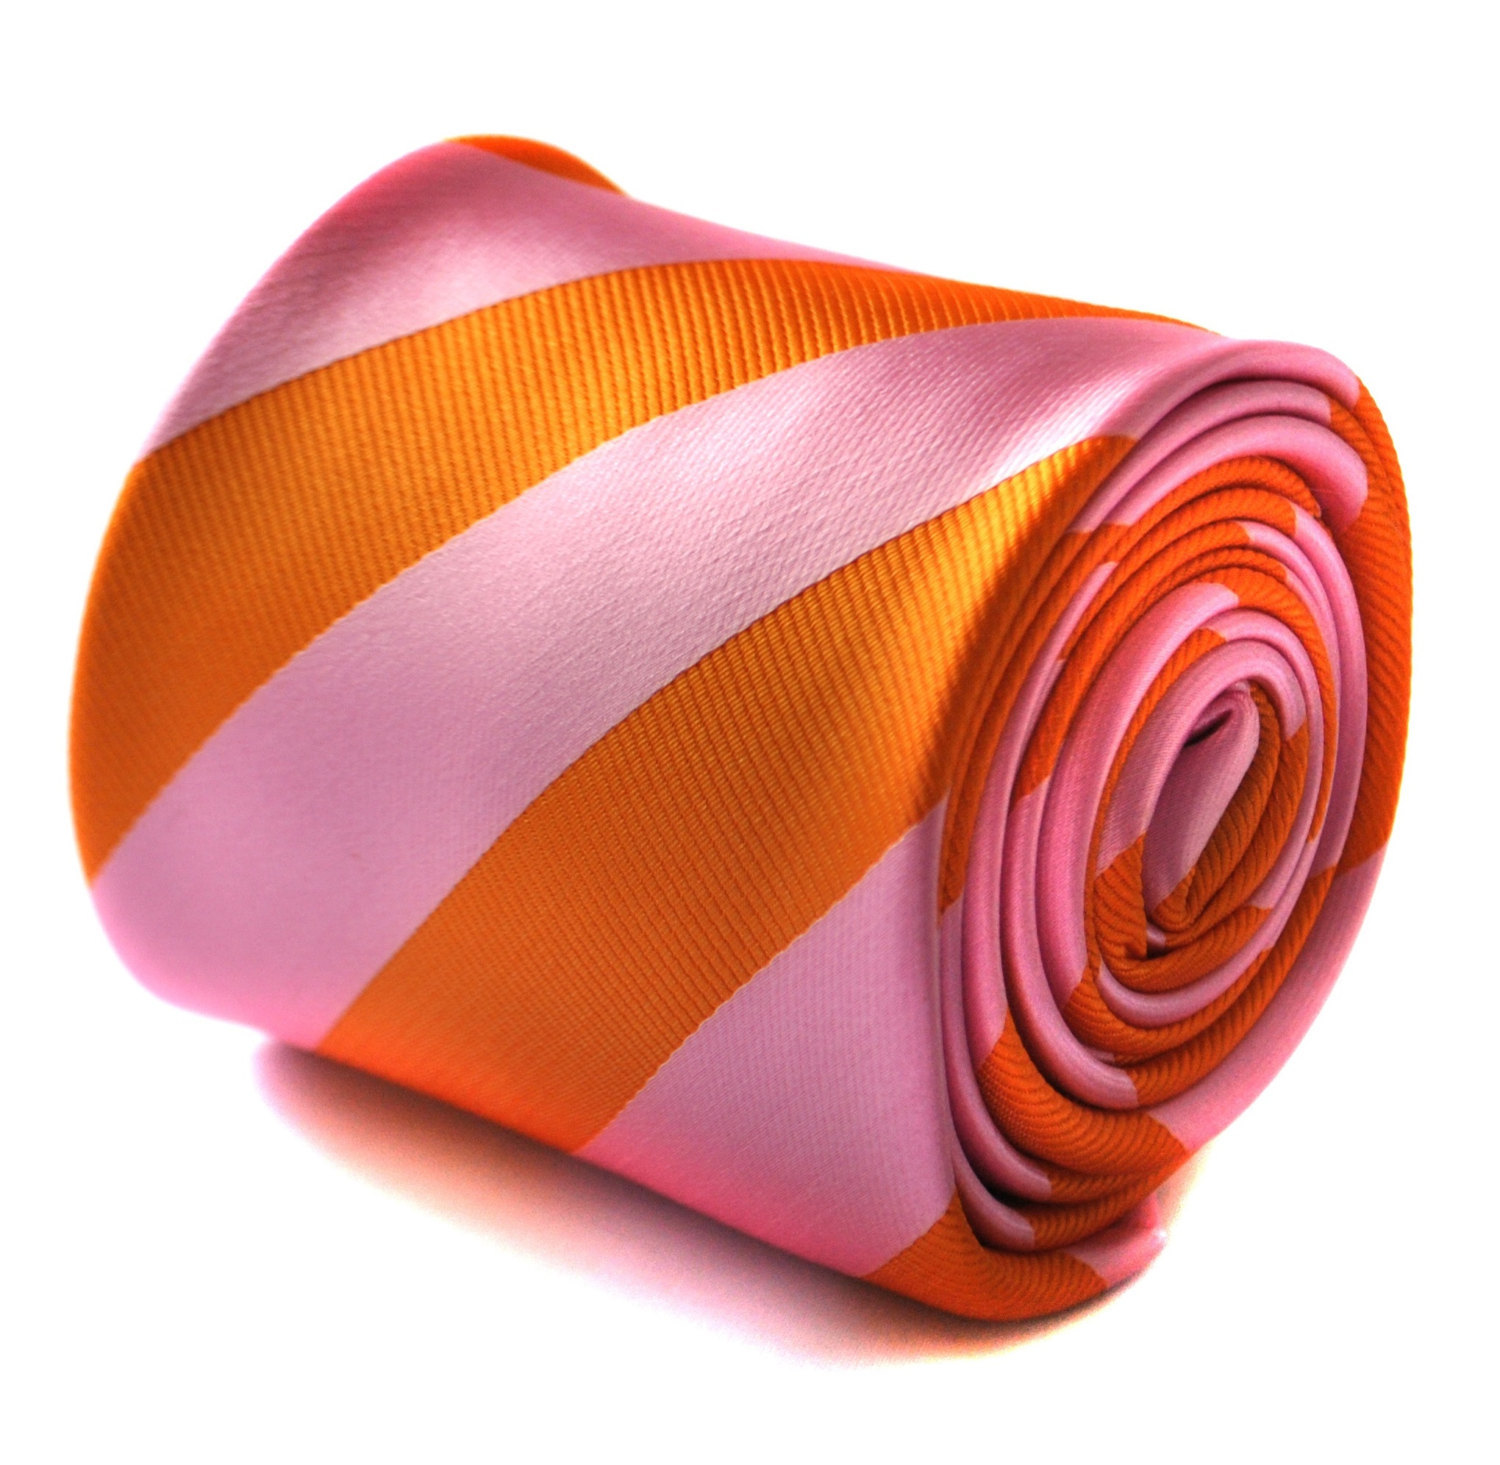 orange and pink barber striped tie with signature floral design to the rear by F